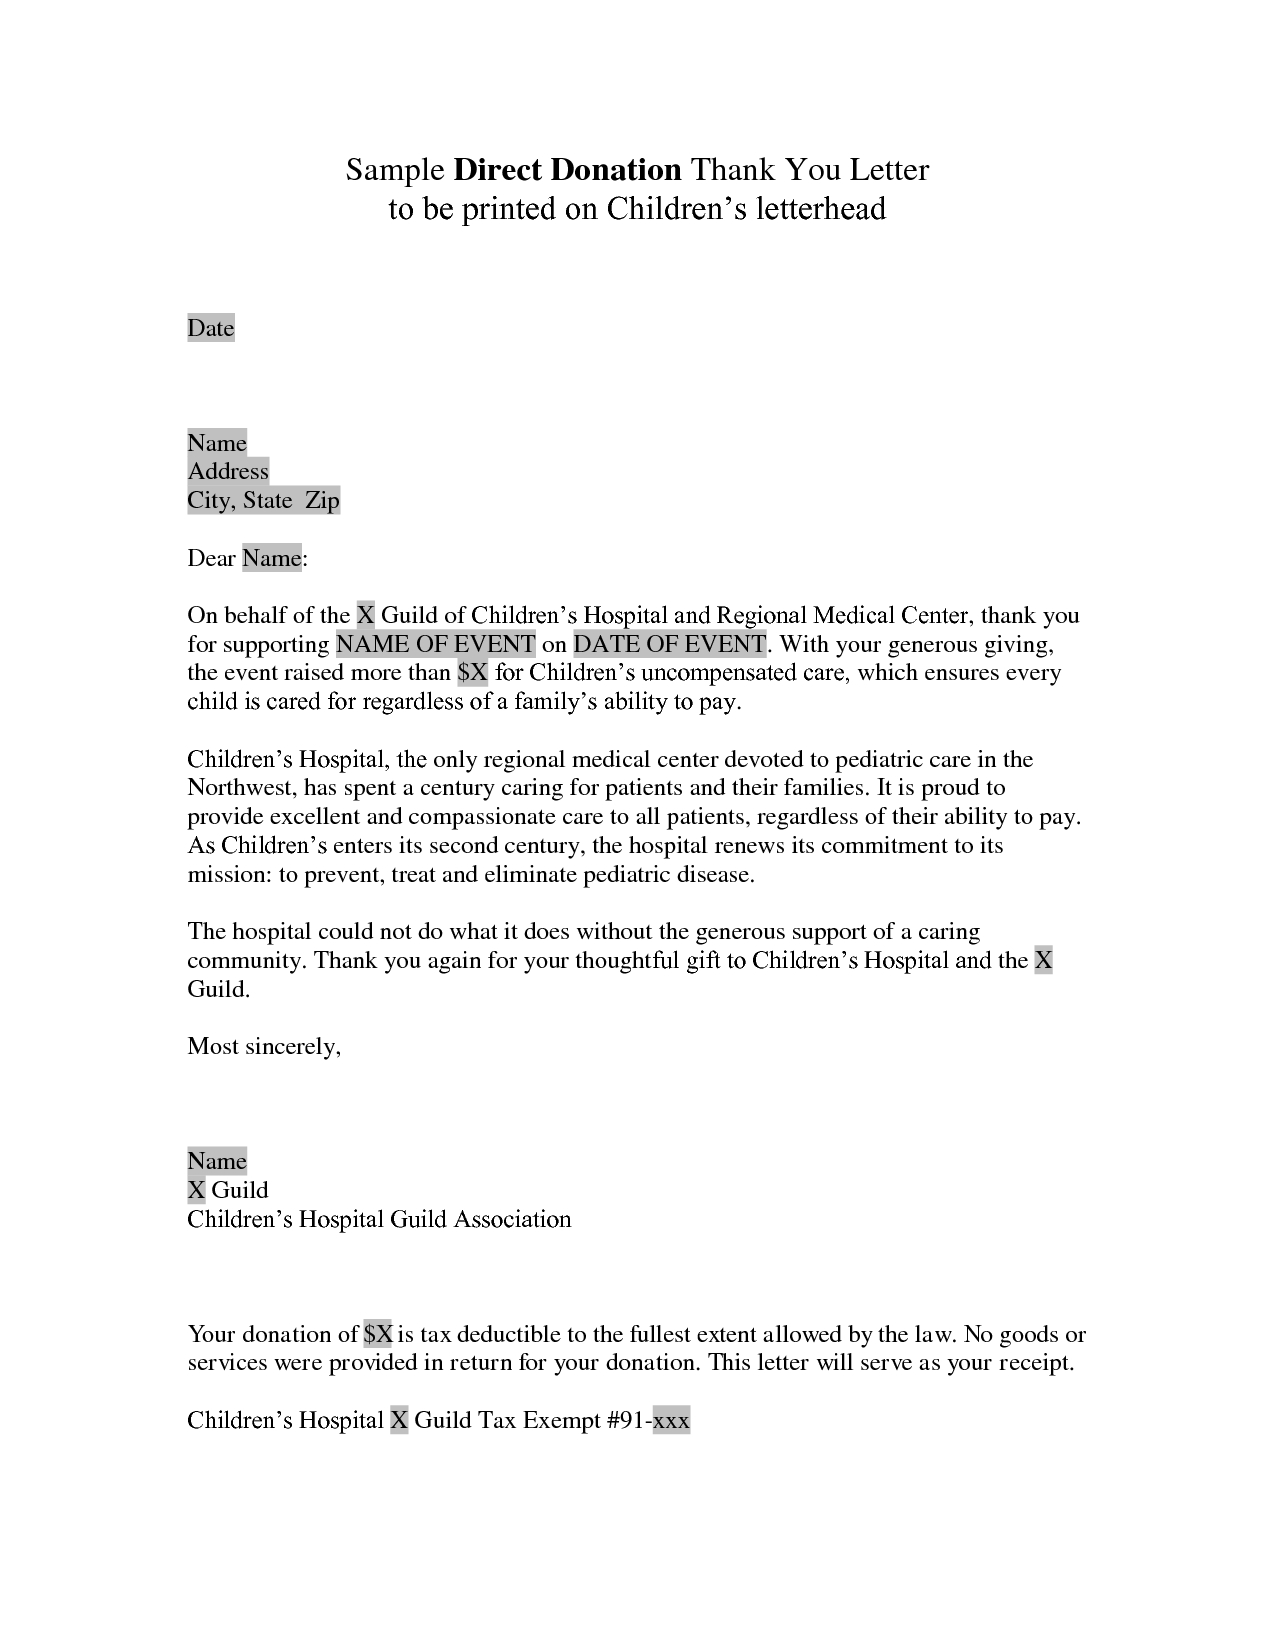 Charity Donation Request Letter Template - Donor Thank You Letter Sample